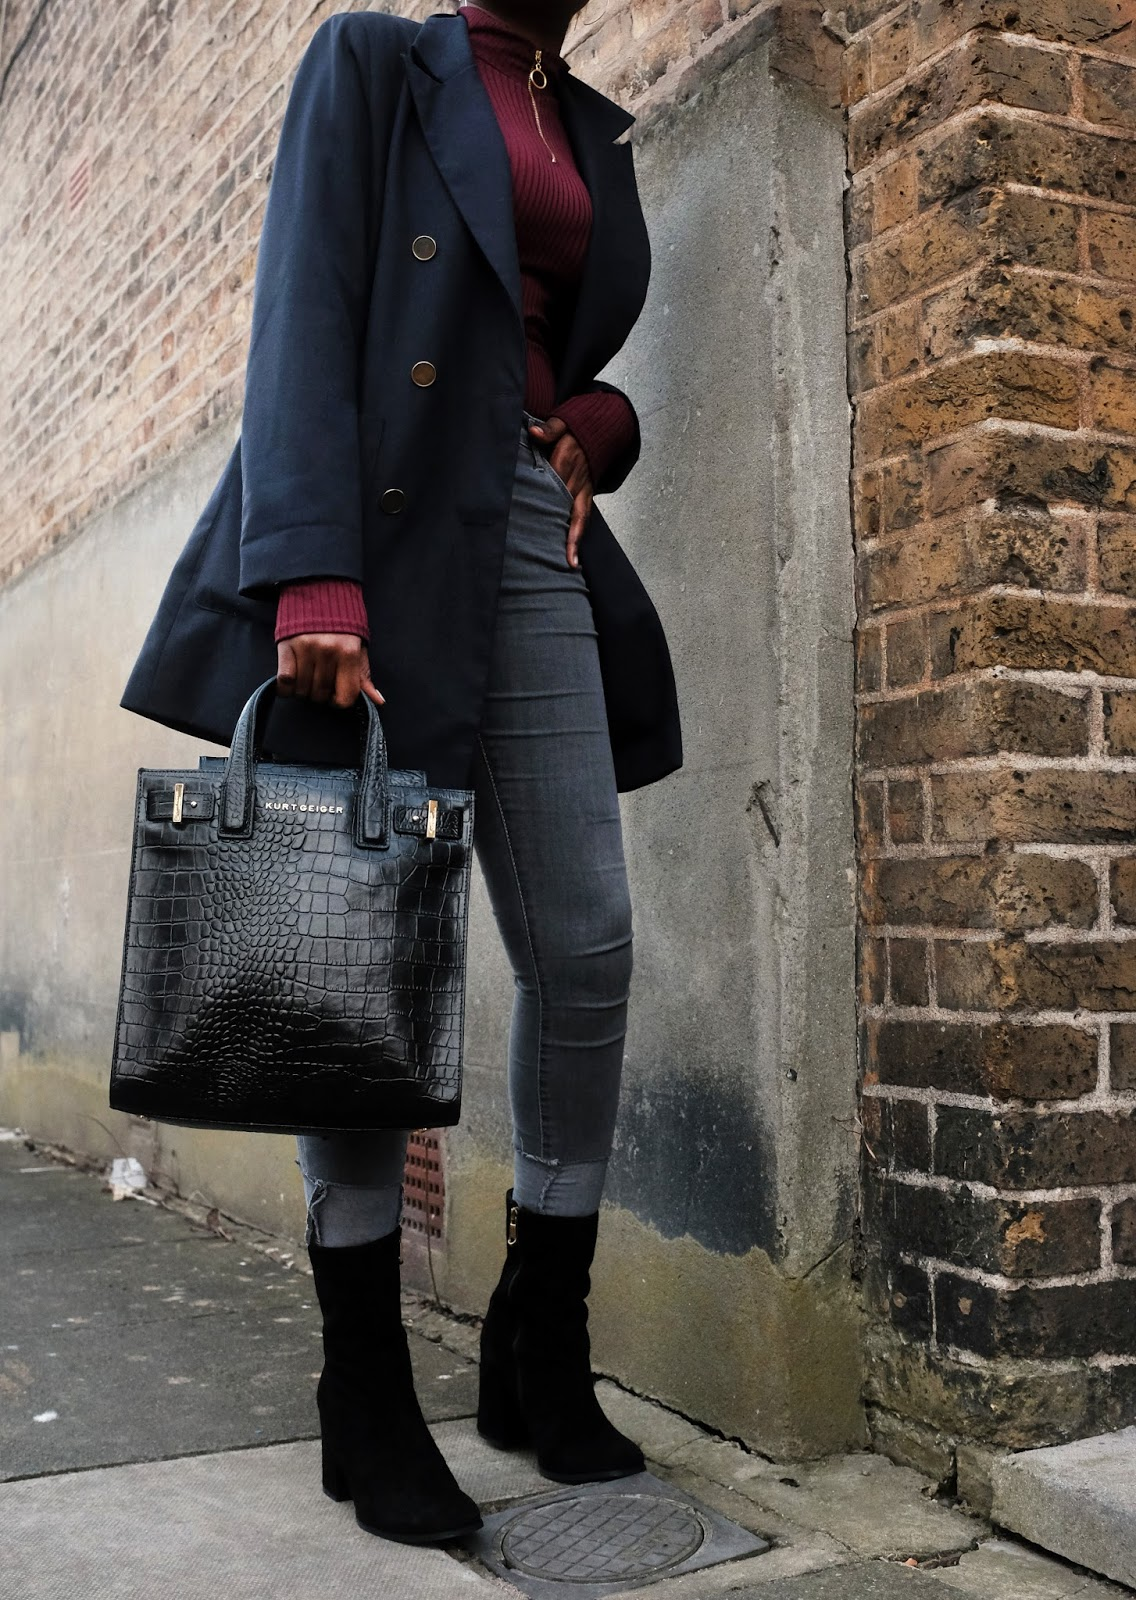 Topshop Archive Blazer Missguided Ribbed High Neck Zip Top Grey Topshop Skinny Jamie Jeans Kurt Geiger London Black Croc Backpack Black Slinky Carvela Kurt Geiger Boots